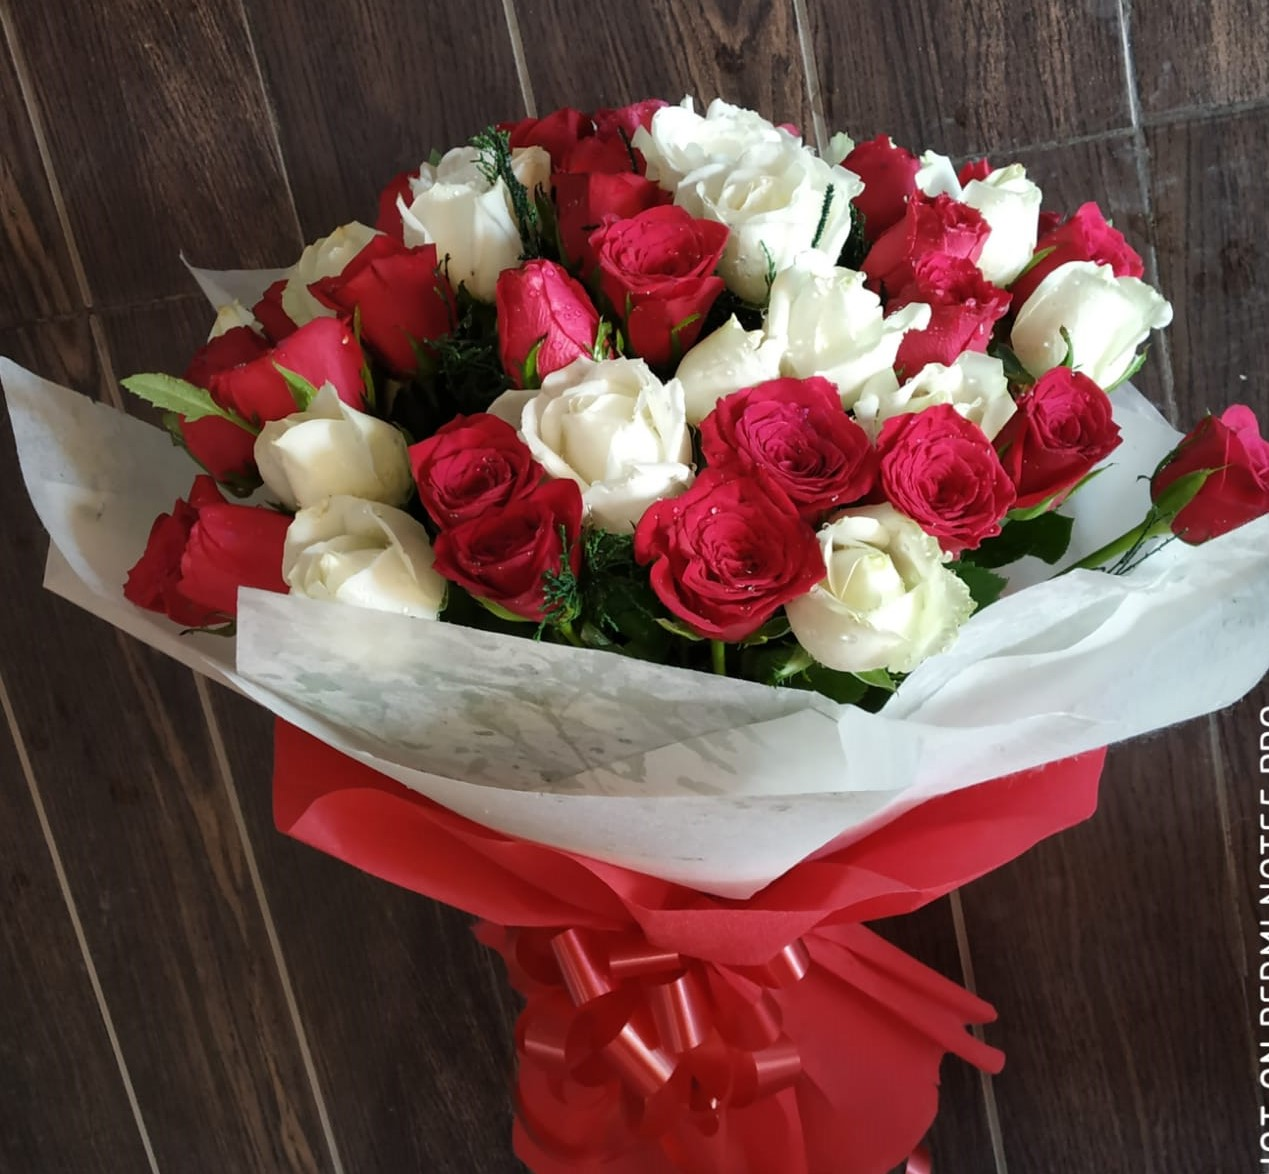 Flowers Delivery in Wembley GurgaonRed & White Roses in Duble Layer Packing